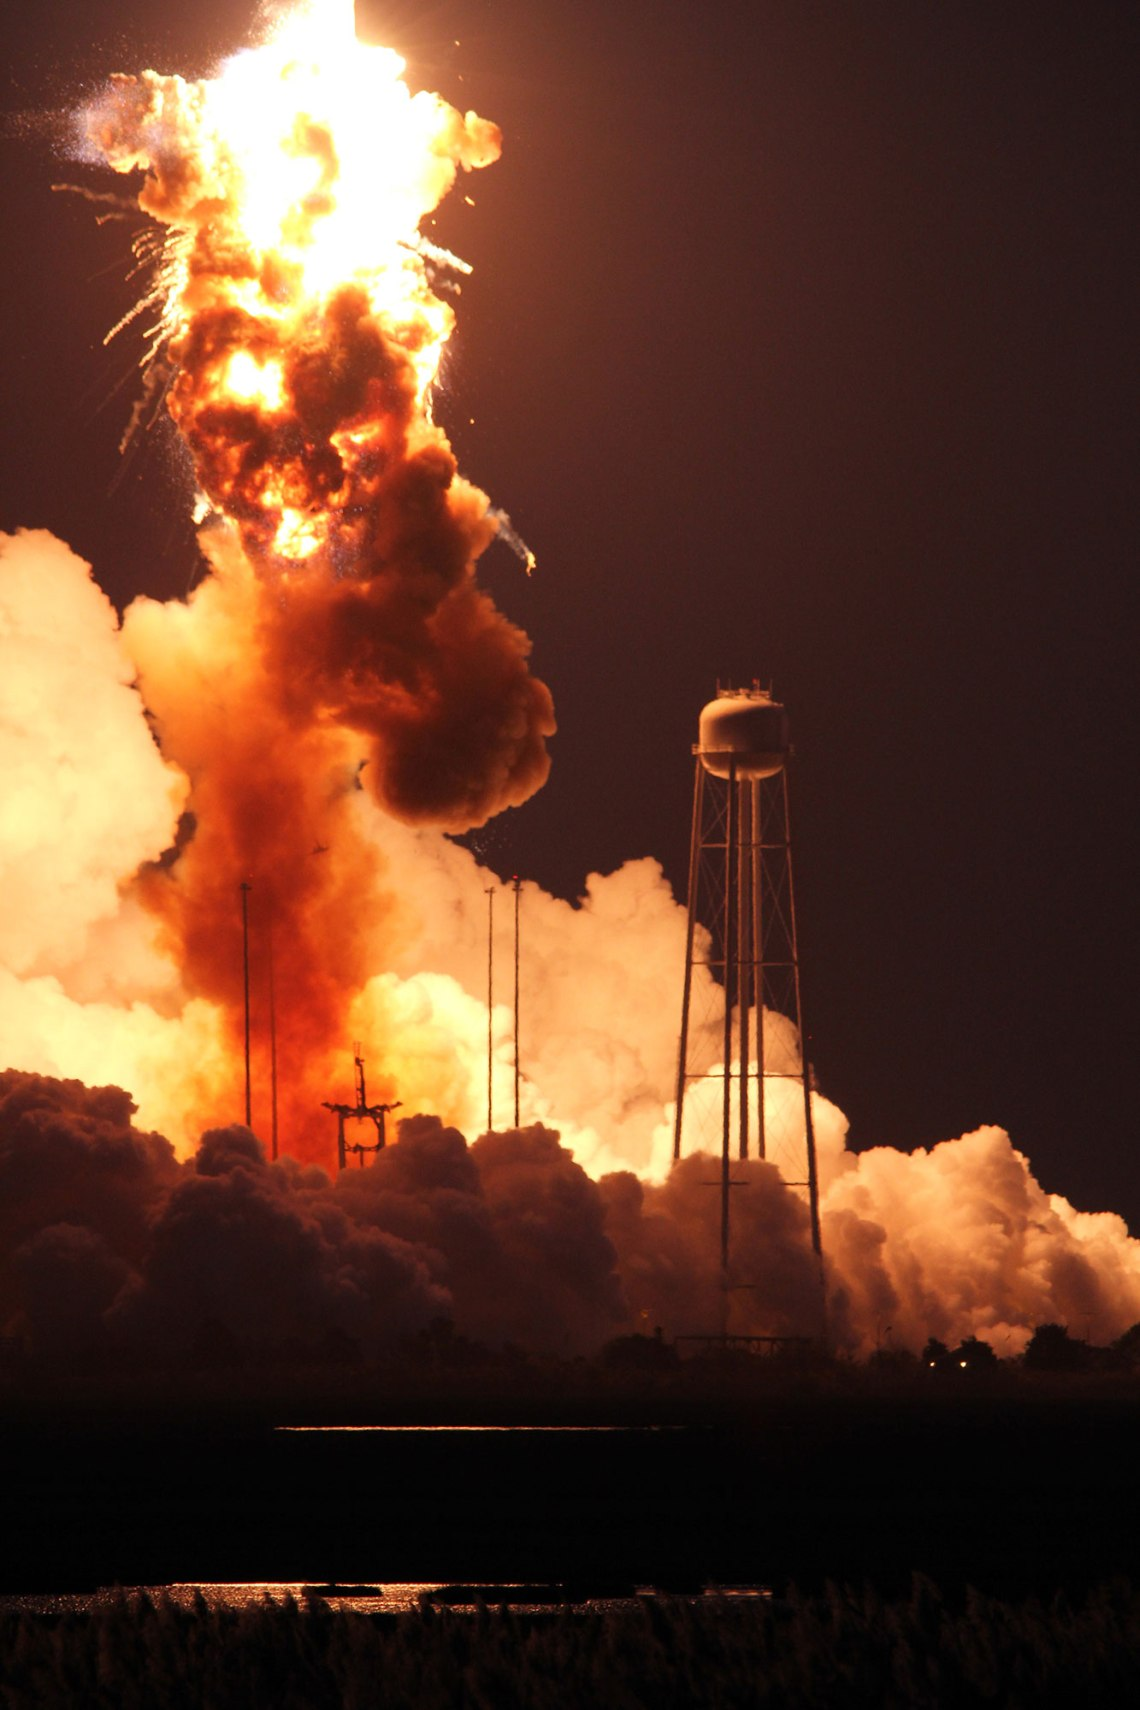 The rocket carrying the Orb-3 mission exploded seconds after liftoff from the NASA's Wallops Flight Facility. Credit: Ken Kremer